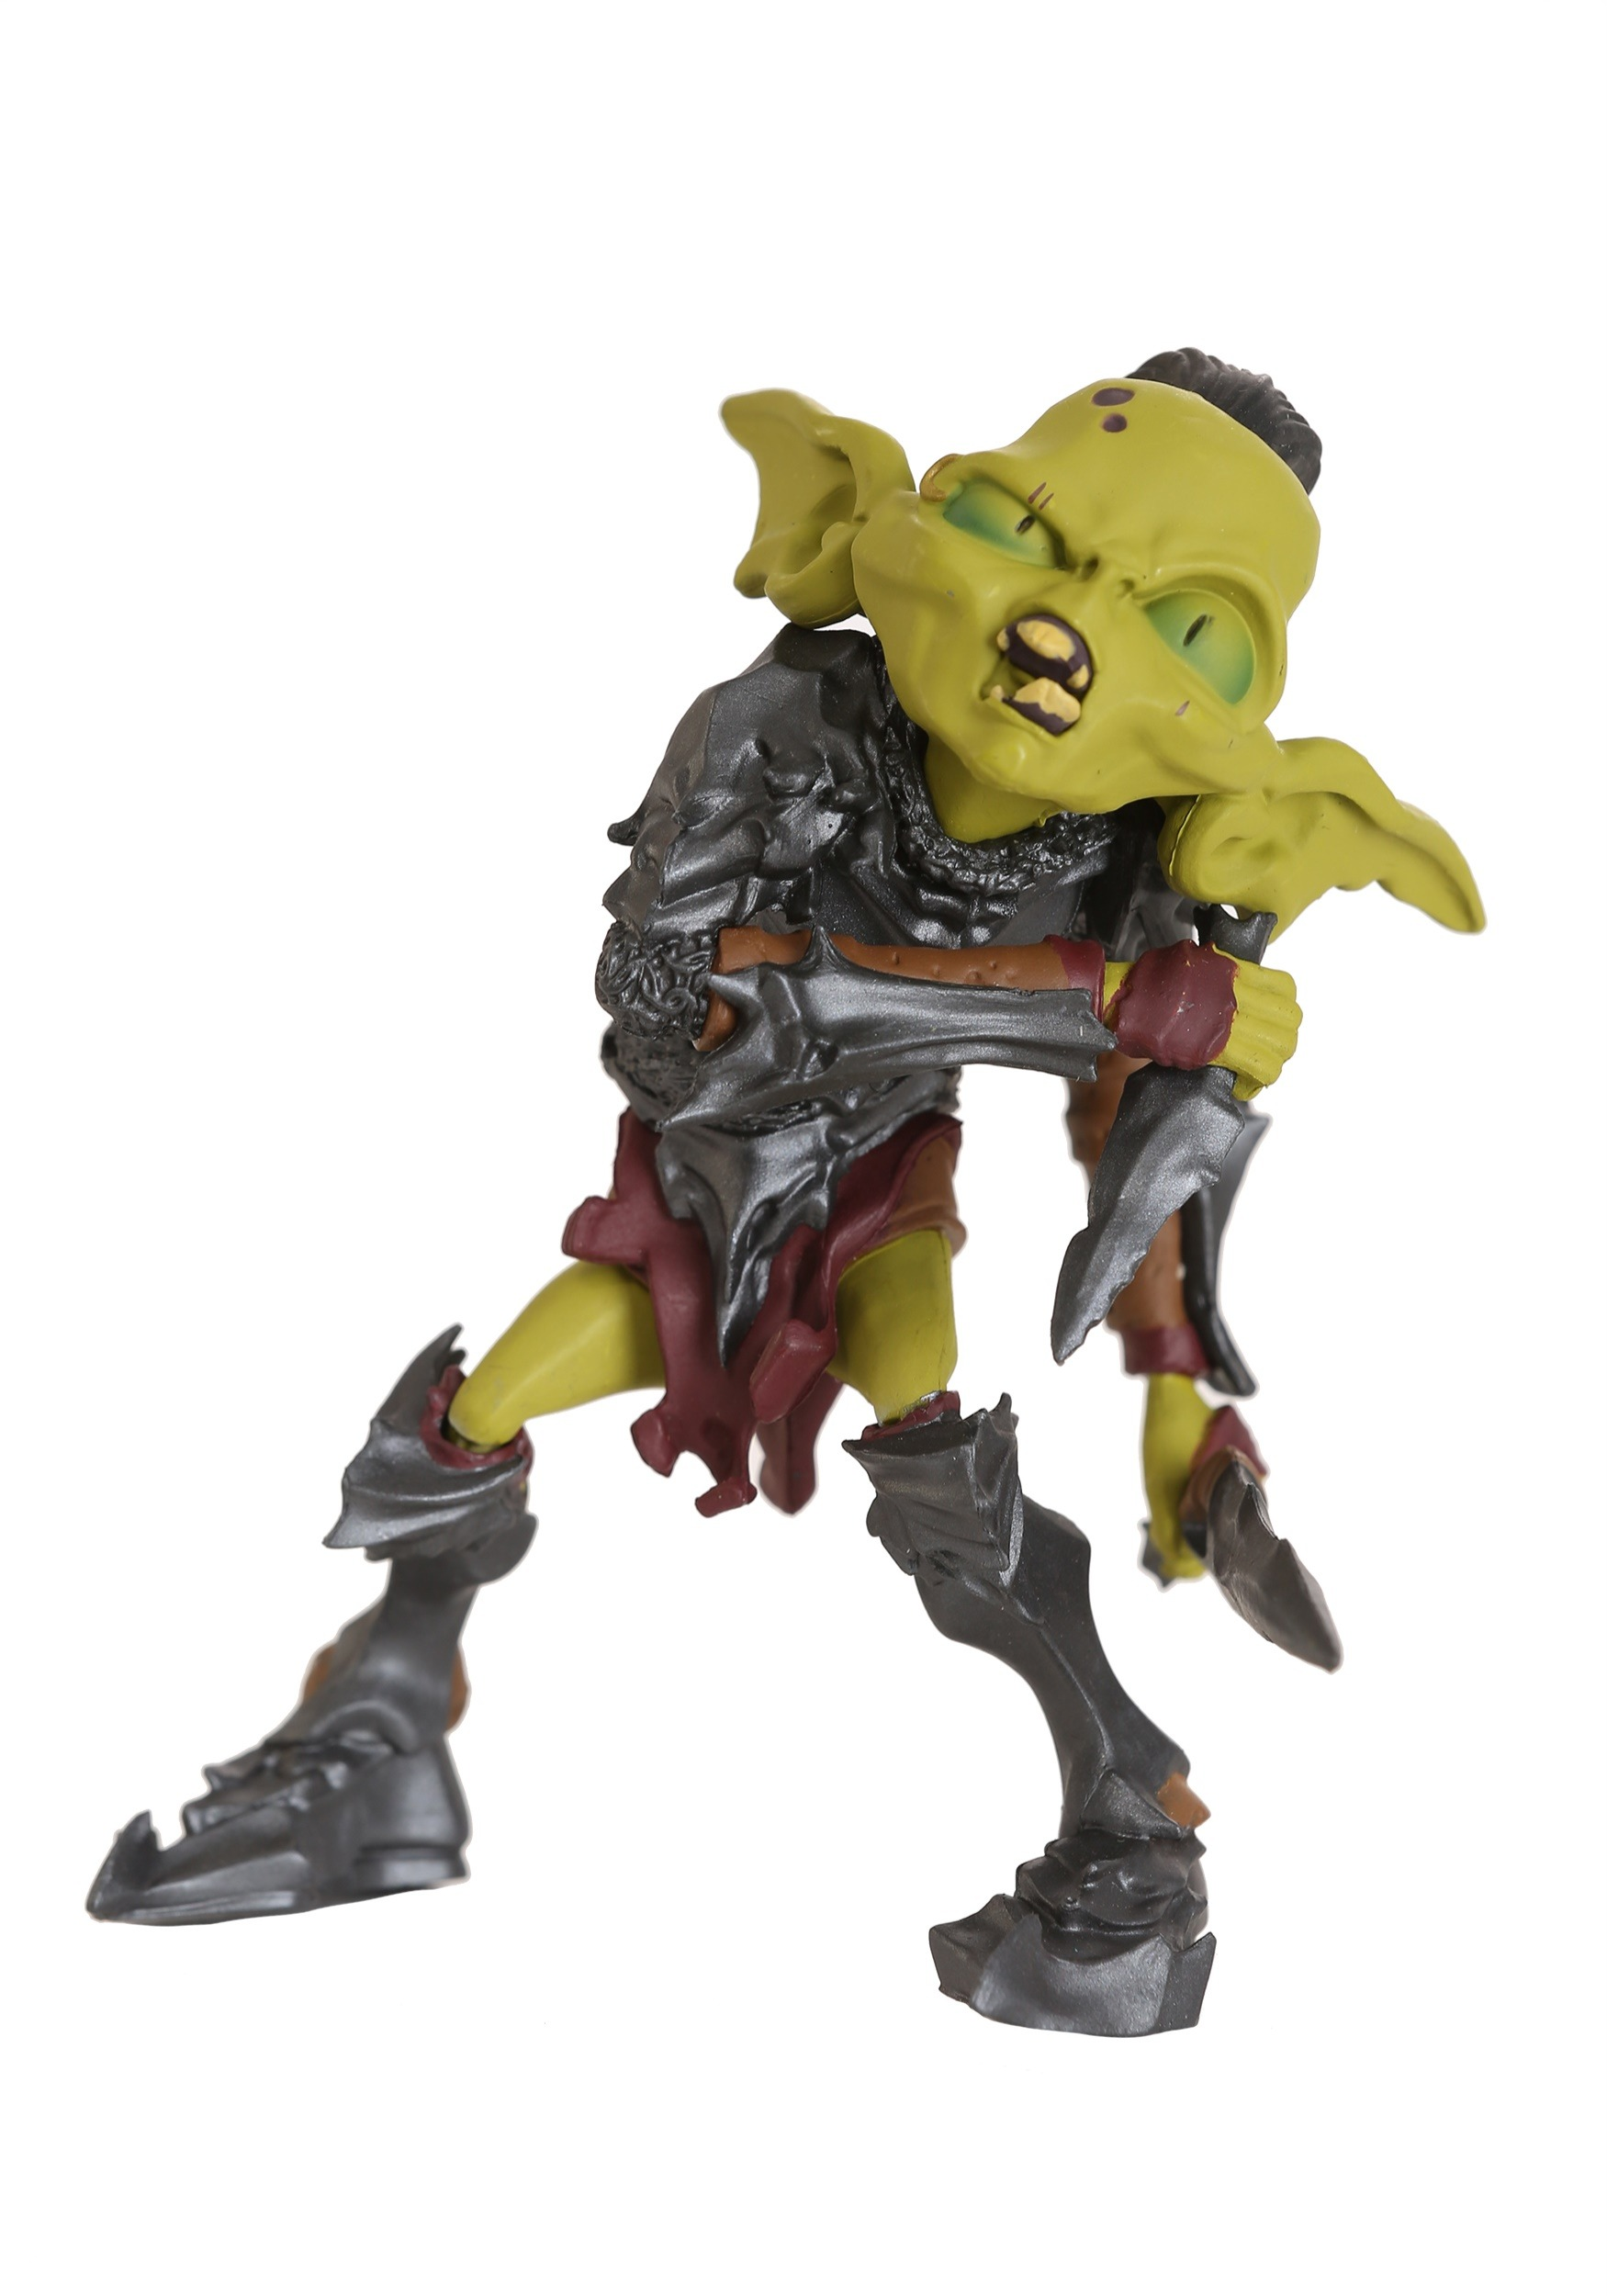 BRAND NEW Mini Epics The Lord Of The Rings Moria Orc